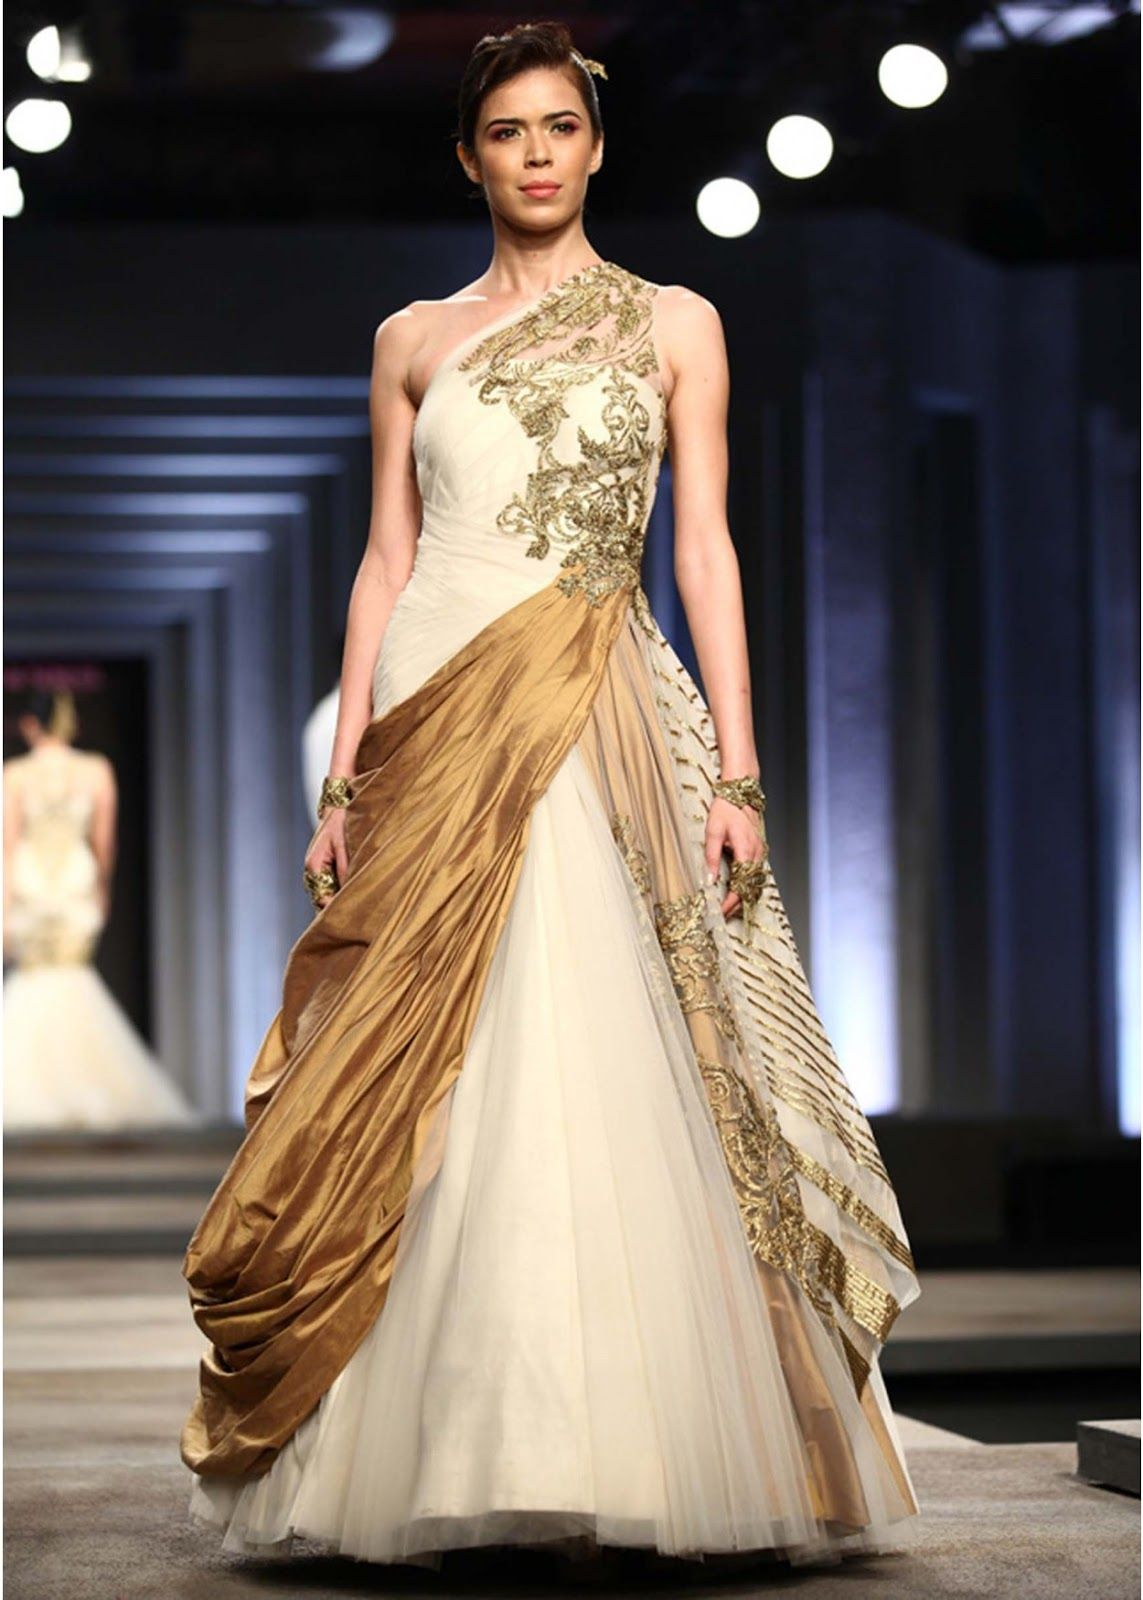 Wedding gown dress indian fashion week wow love the for Indian wedding dresses online india